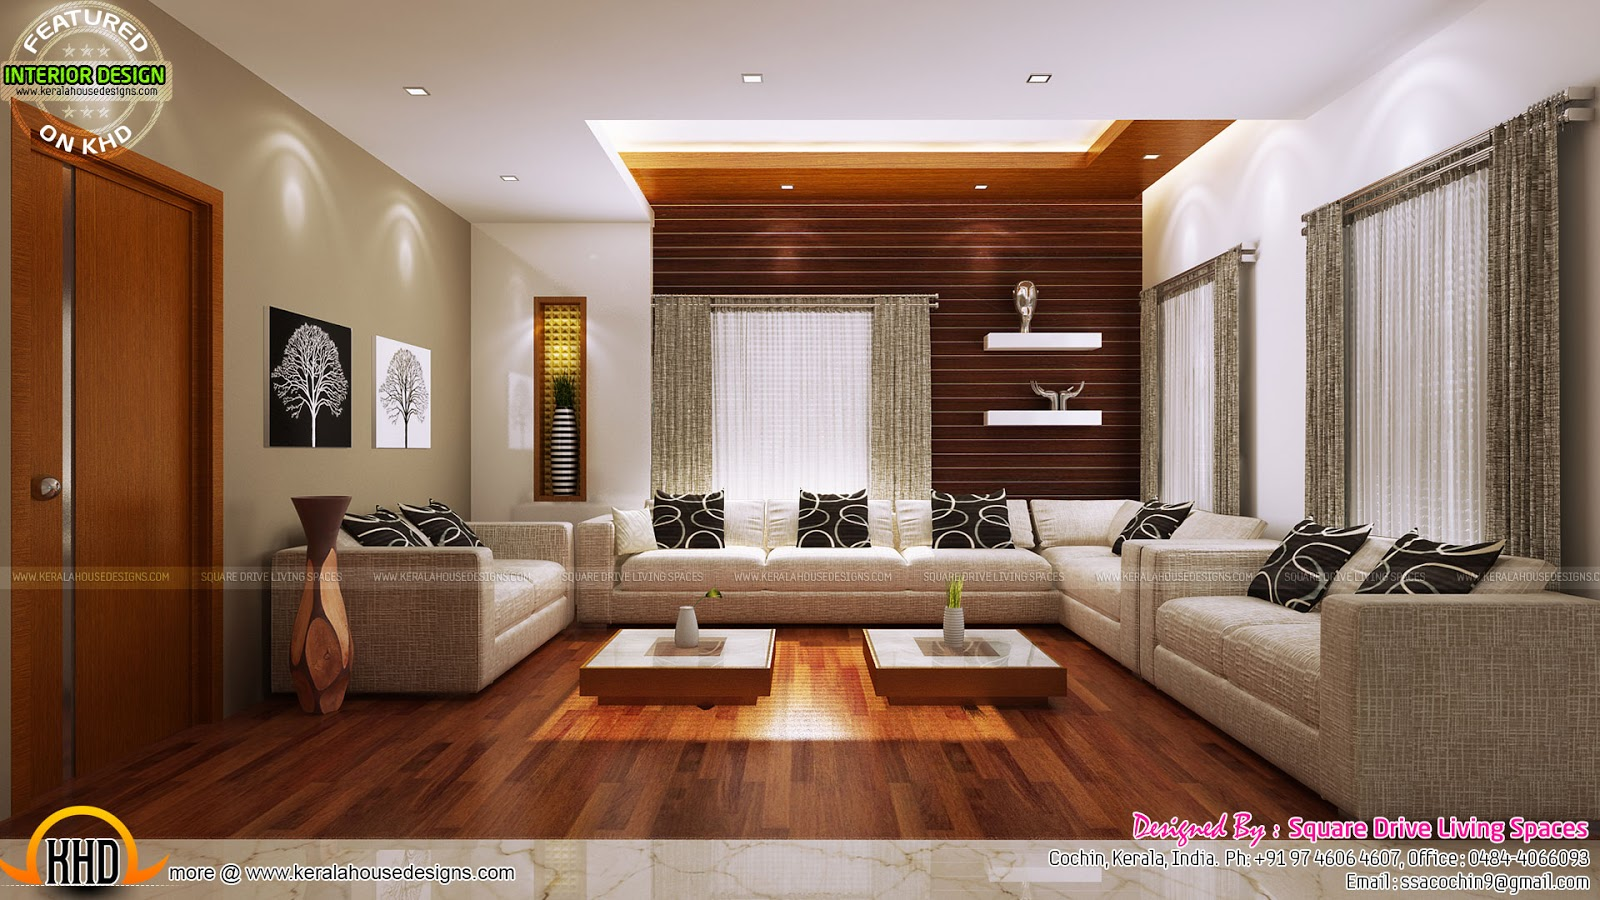 Excellent kerala interior design kerala home design and for House interior design ideas